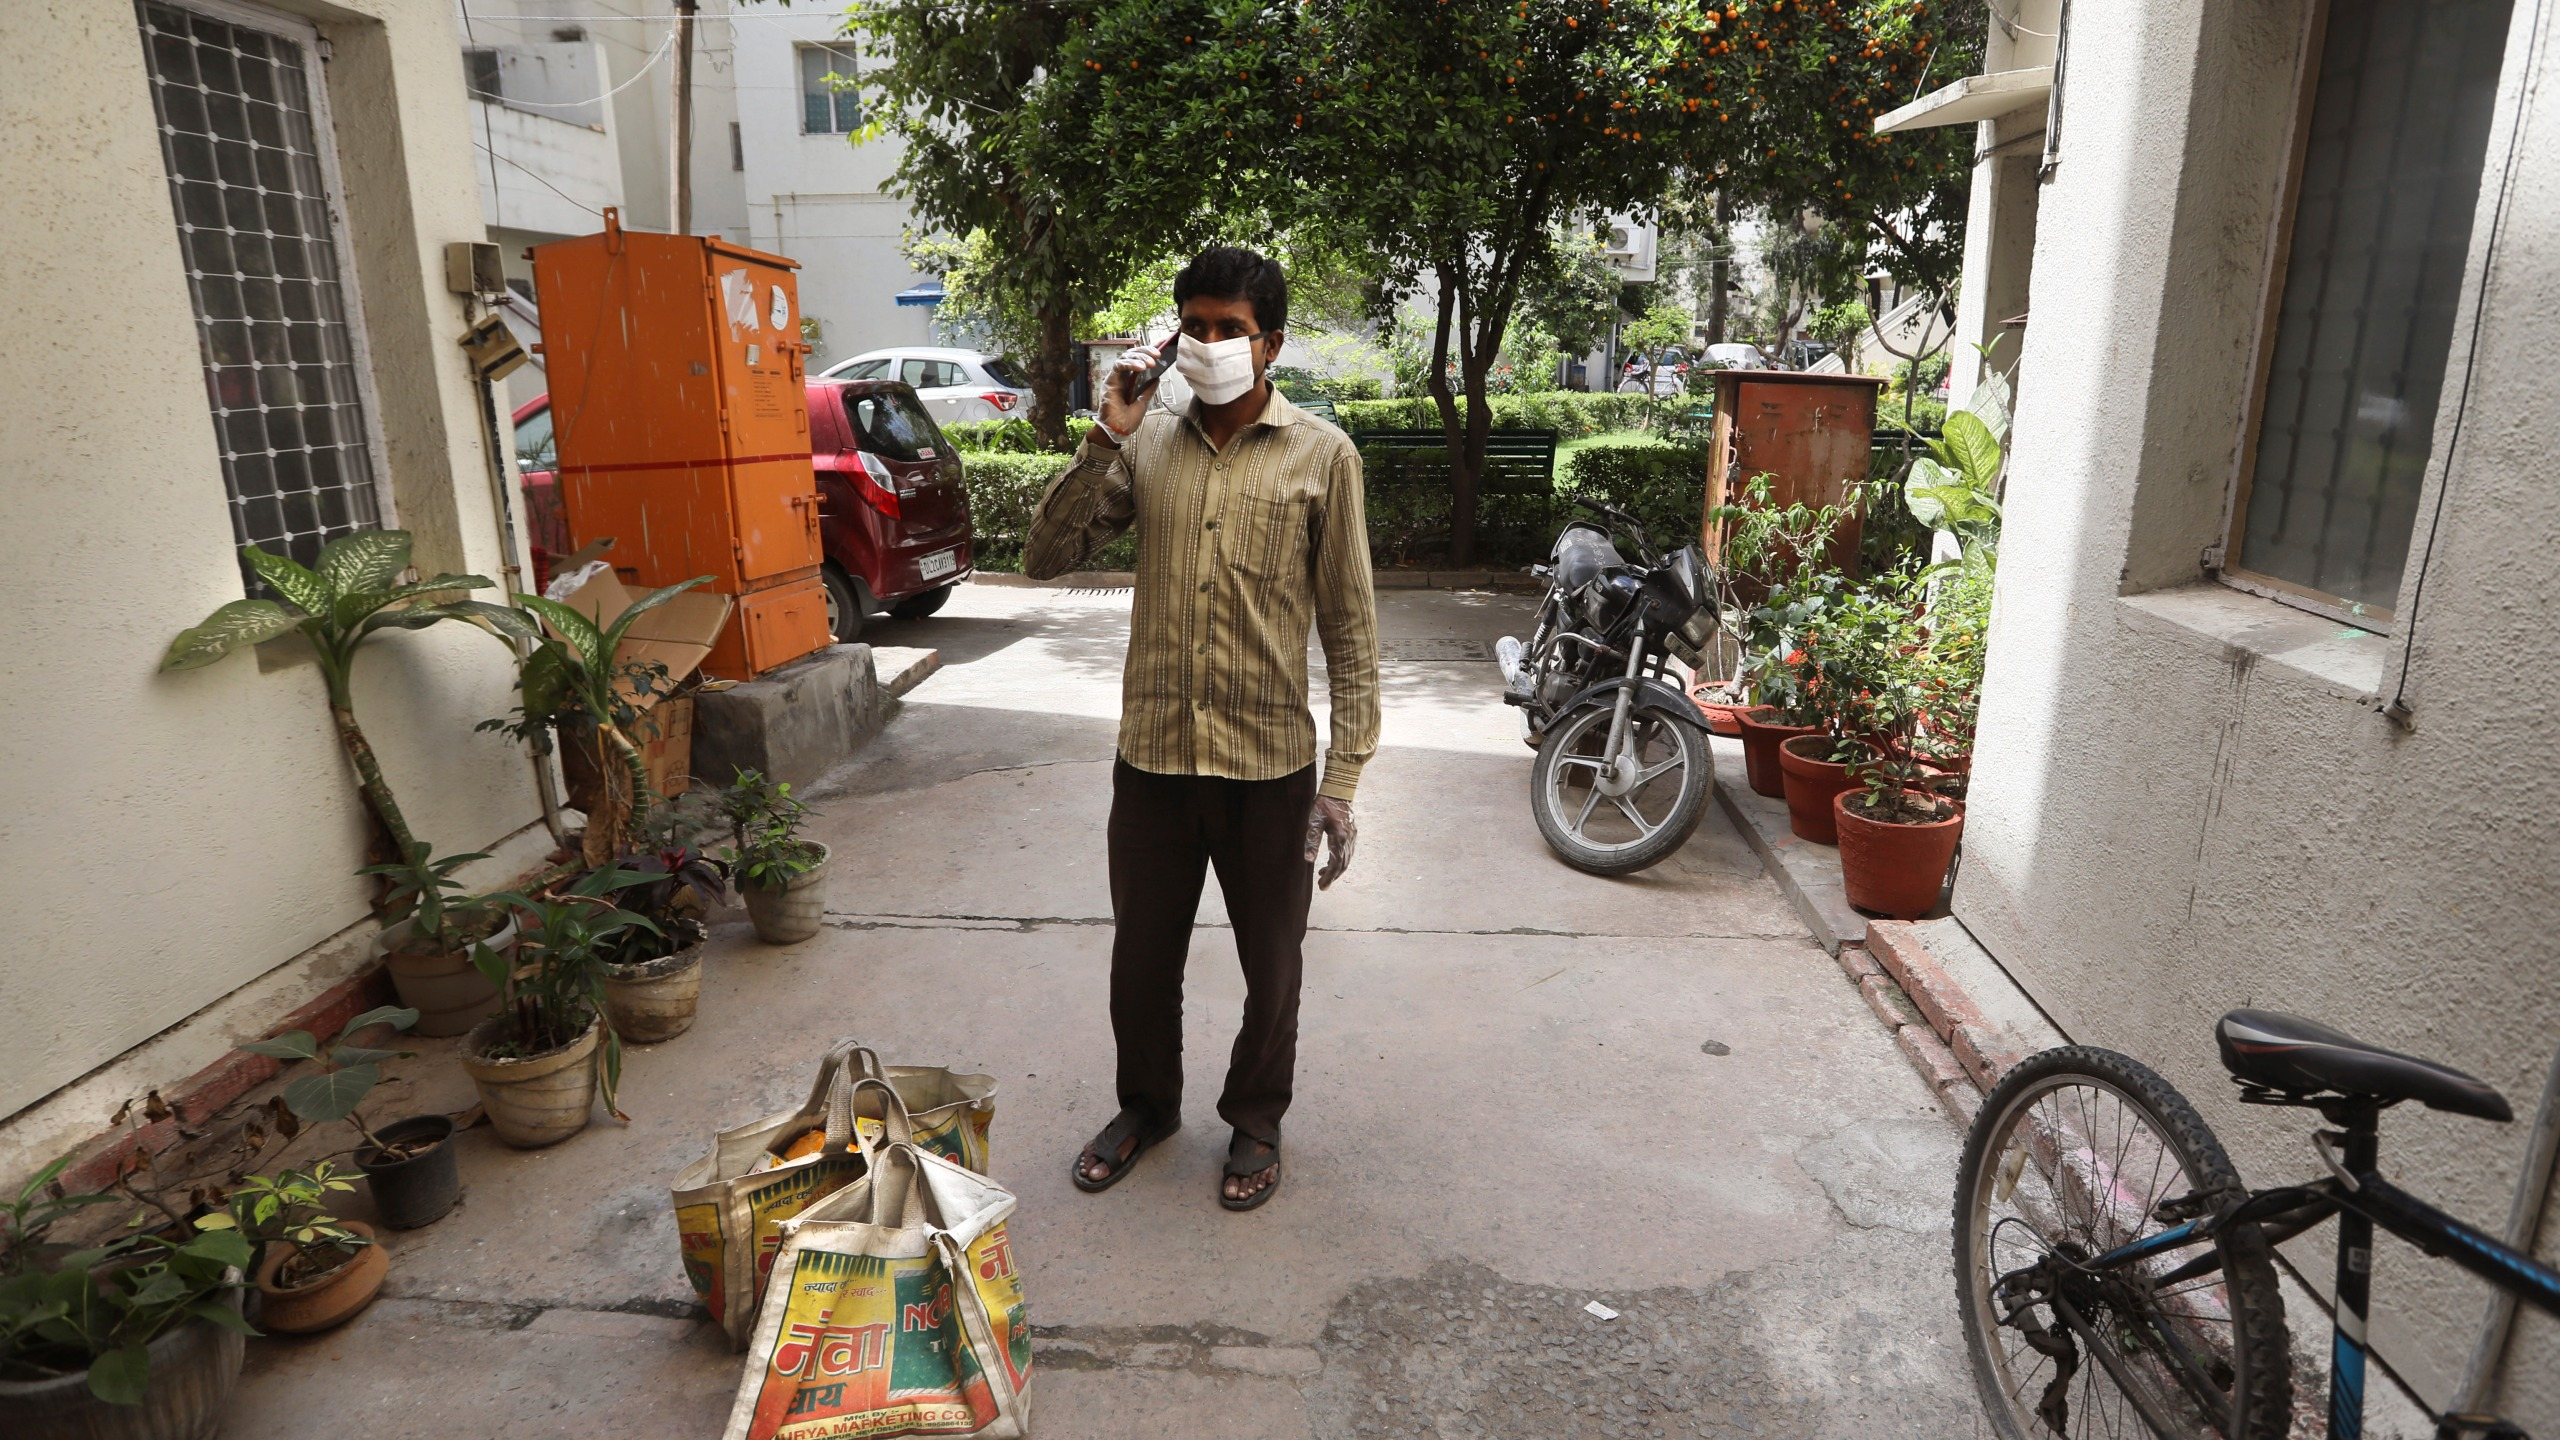 A grocery shop employee, wearing face mask as a precaution against coronavirus, calls a customer living on the second floor to come down to receive their delivery in New Delhi, India, on Wednesday, March 25, 2020. The world's largest democracy went under the world's biggest lockdown Wednesday, with India's 1.3 billion people ordered to stay home in a bid to stop the coronavirus pandemic (AP Photo/Manish Swarup)